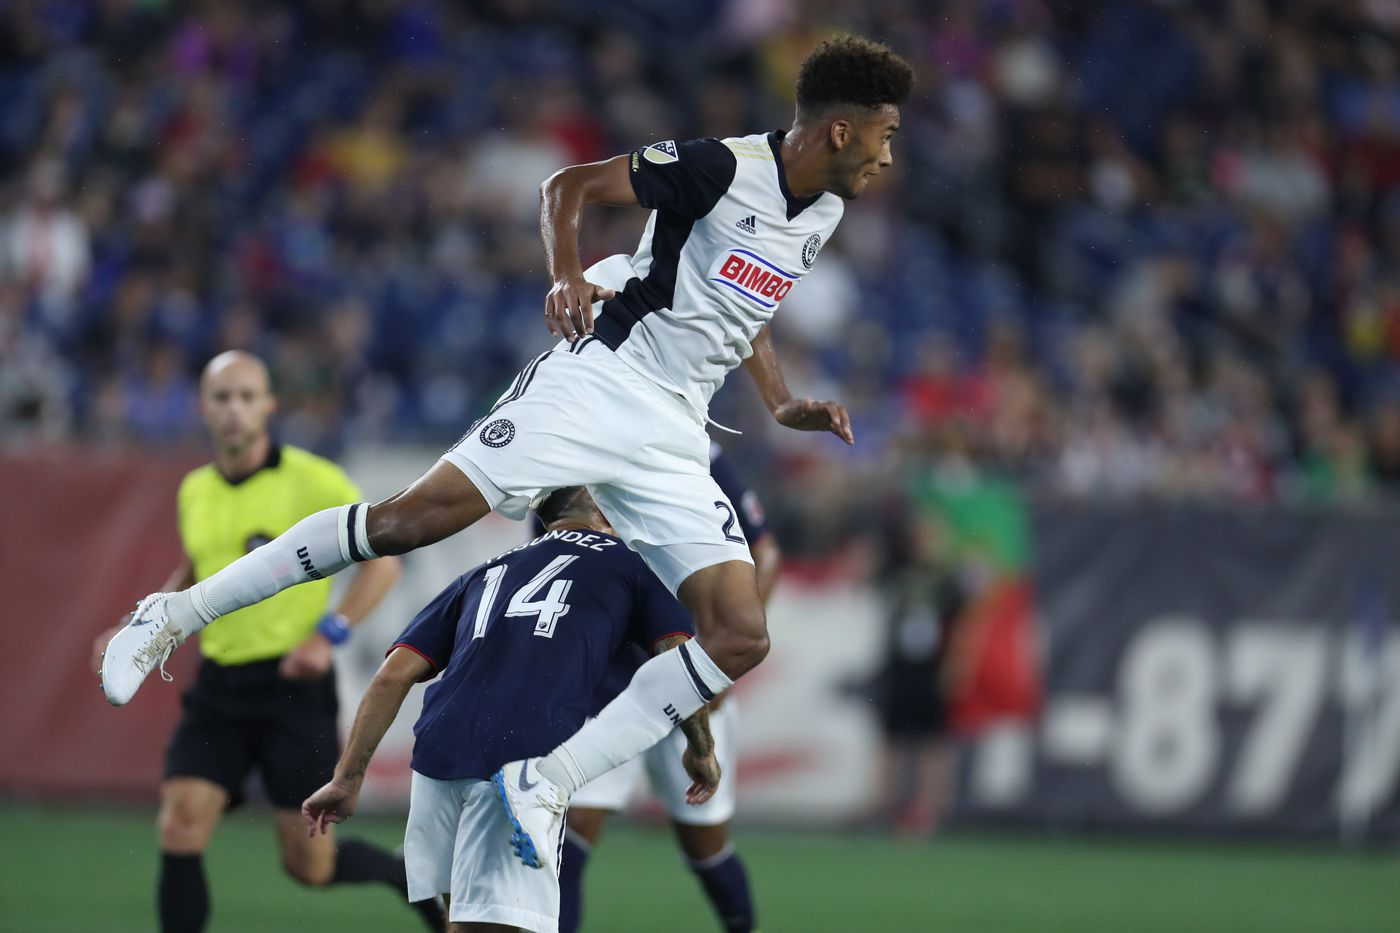 Union's matchup vs. New England Revolution starts season-defining week